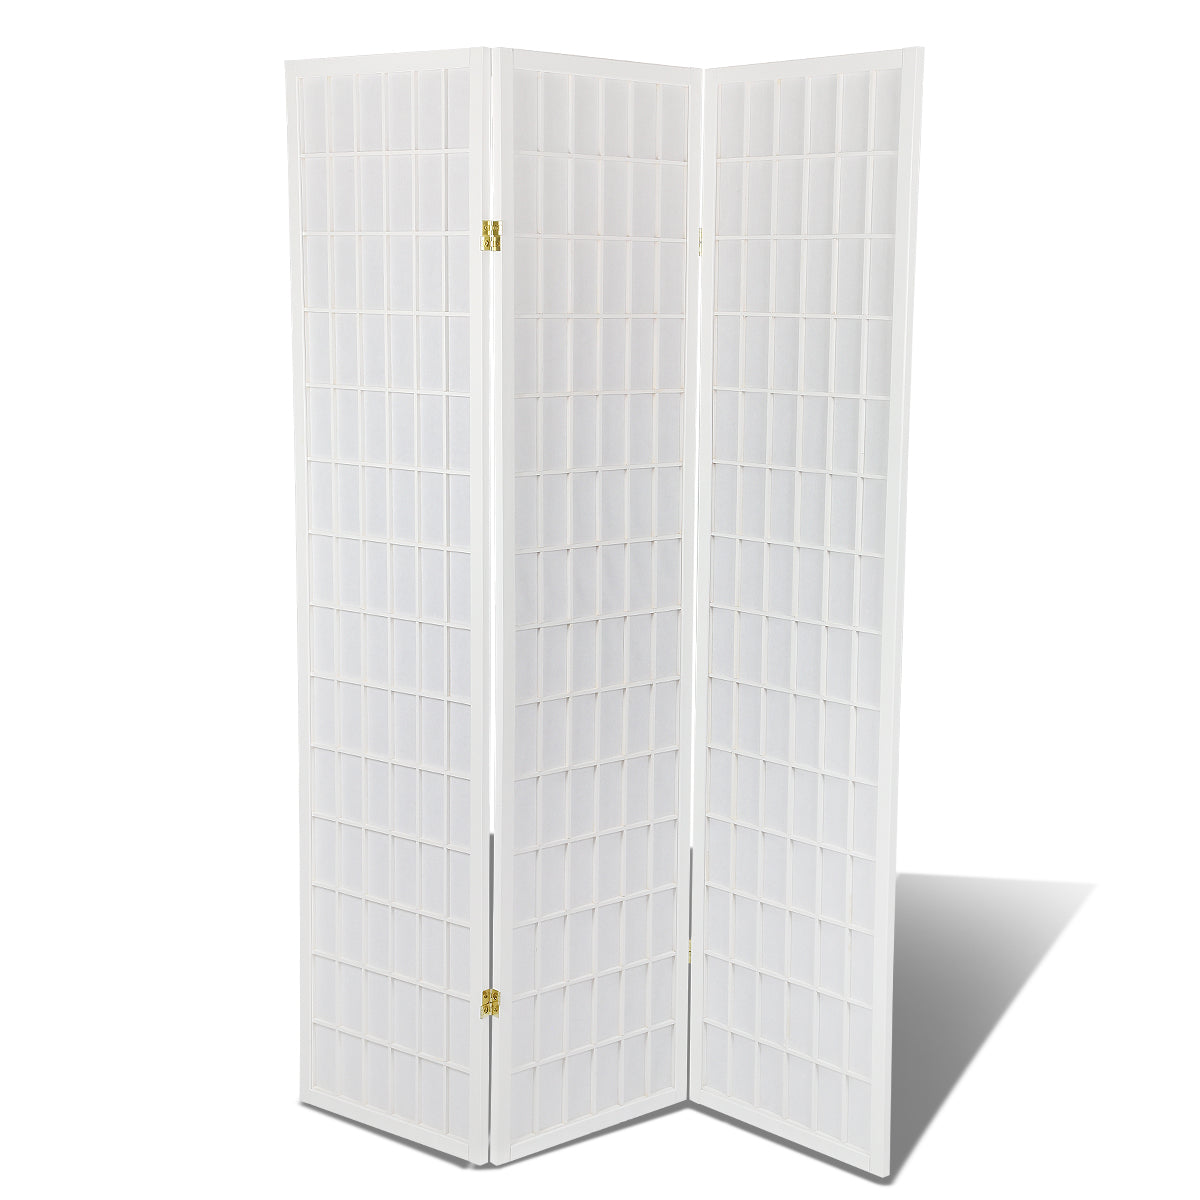 3 Panels Oriental Folding Room Divider Screen Hardwood Shoji Screen Room Separator Partition Wall